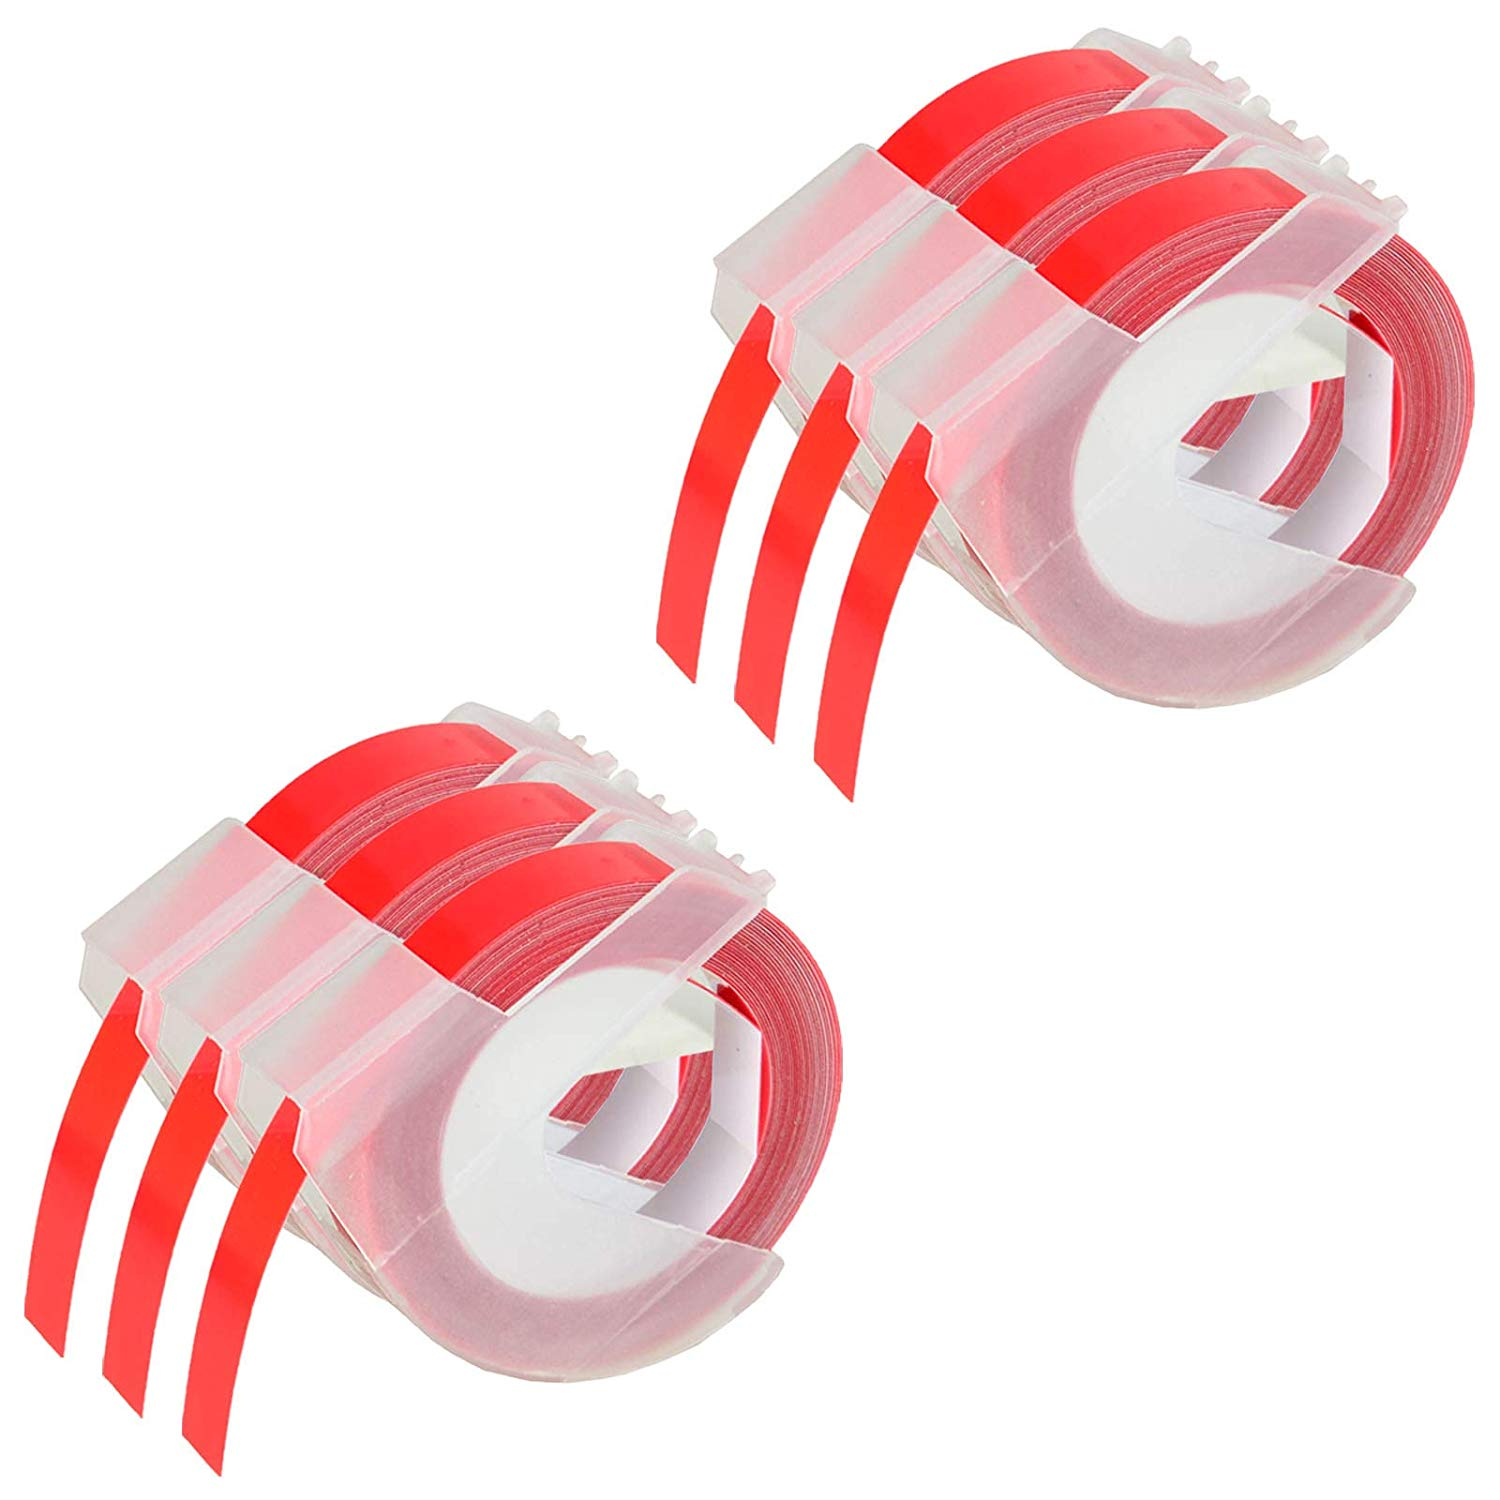 20 rolls x Genuine Dymo 3D embossing tape labels 9mm x 3m in RED